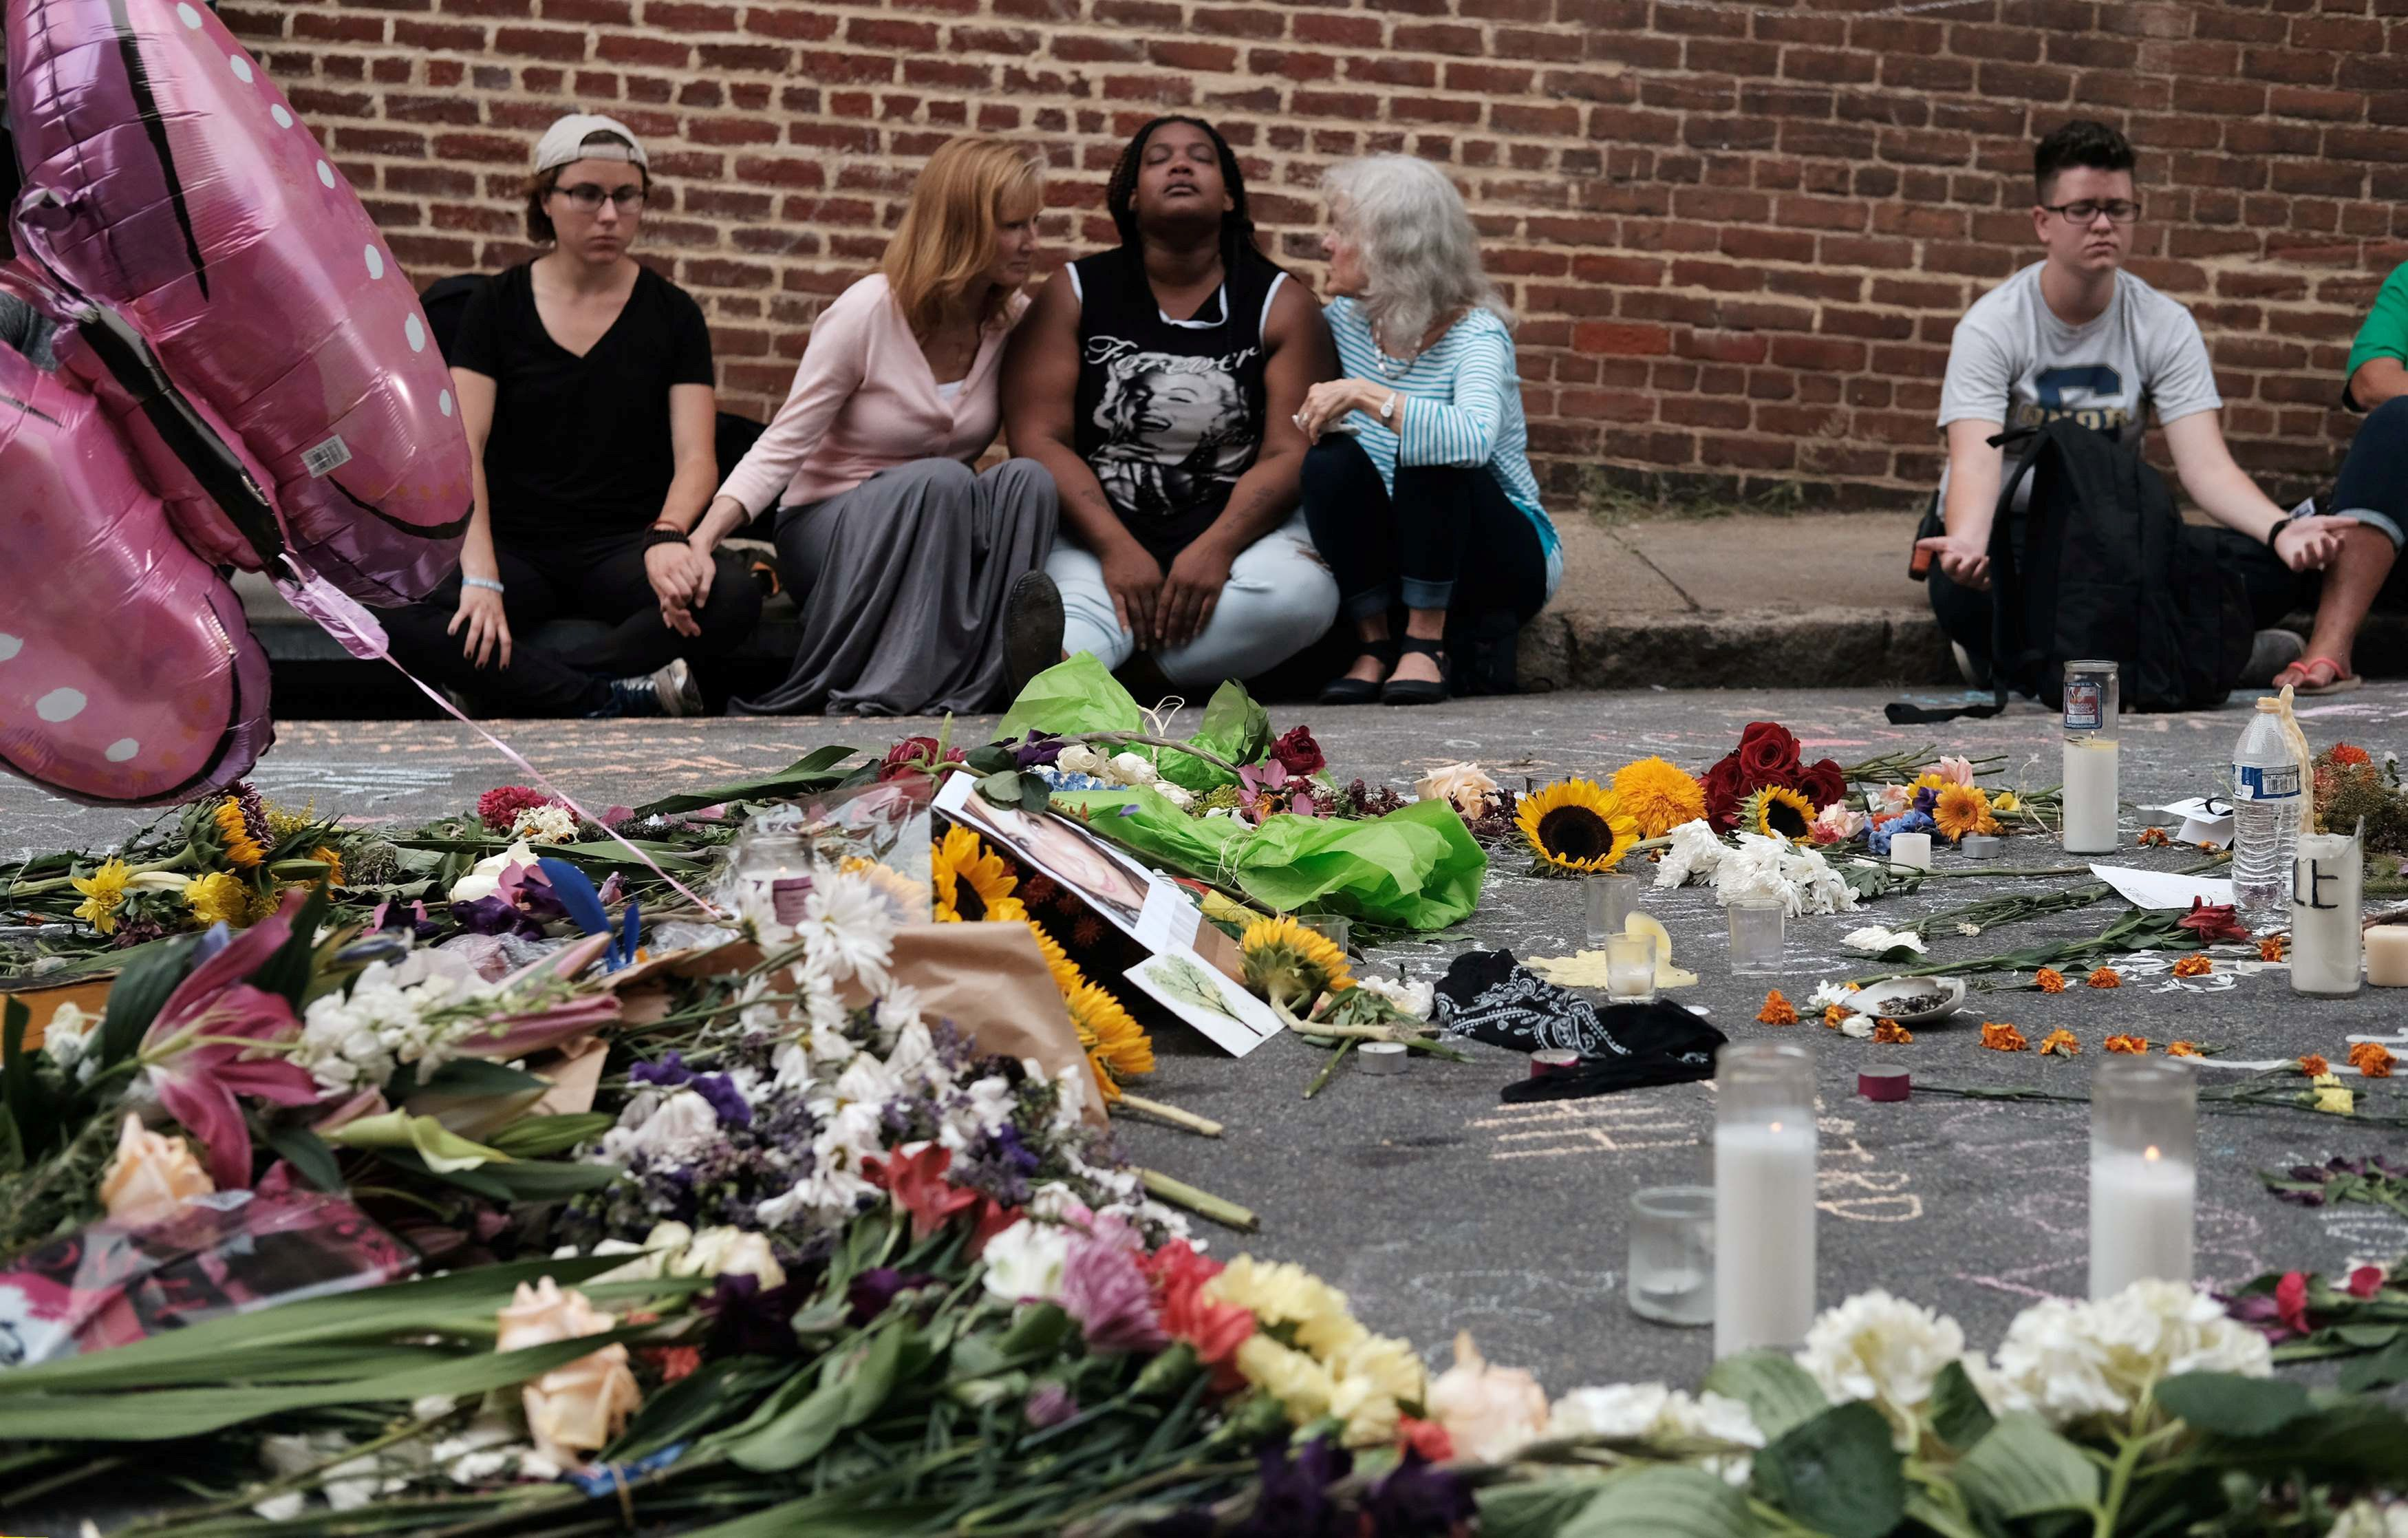 A group sits by a memorial to the victims of the deadly car attack on a group of counter-protesters during a white supremacis